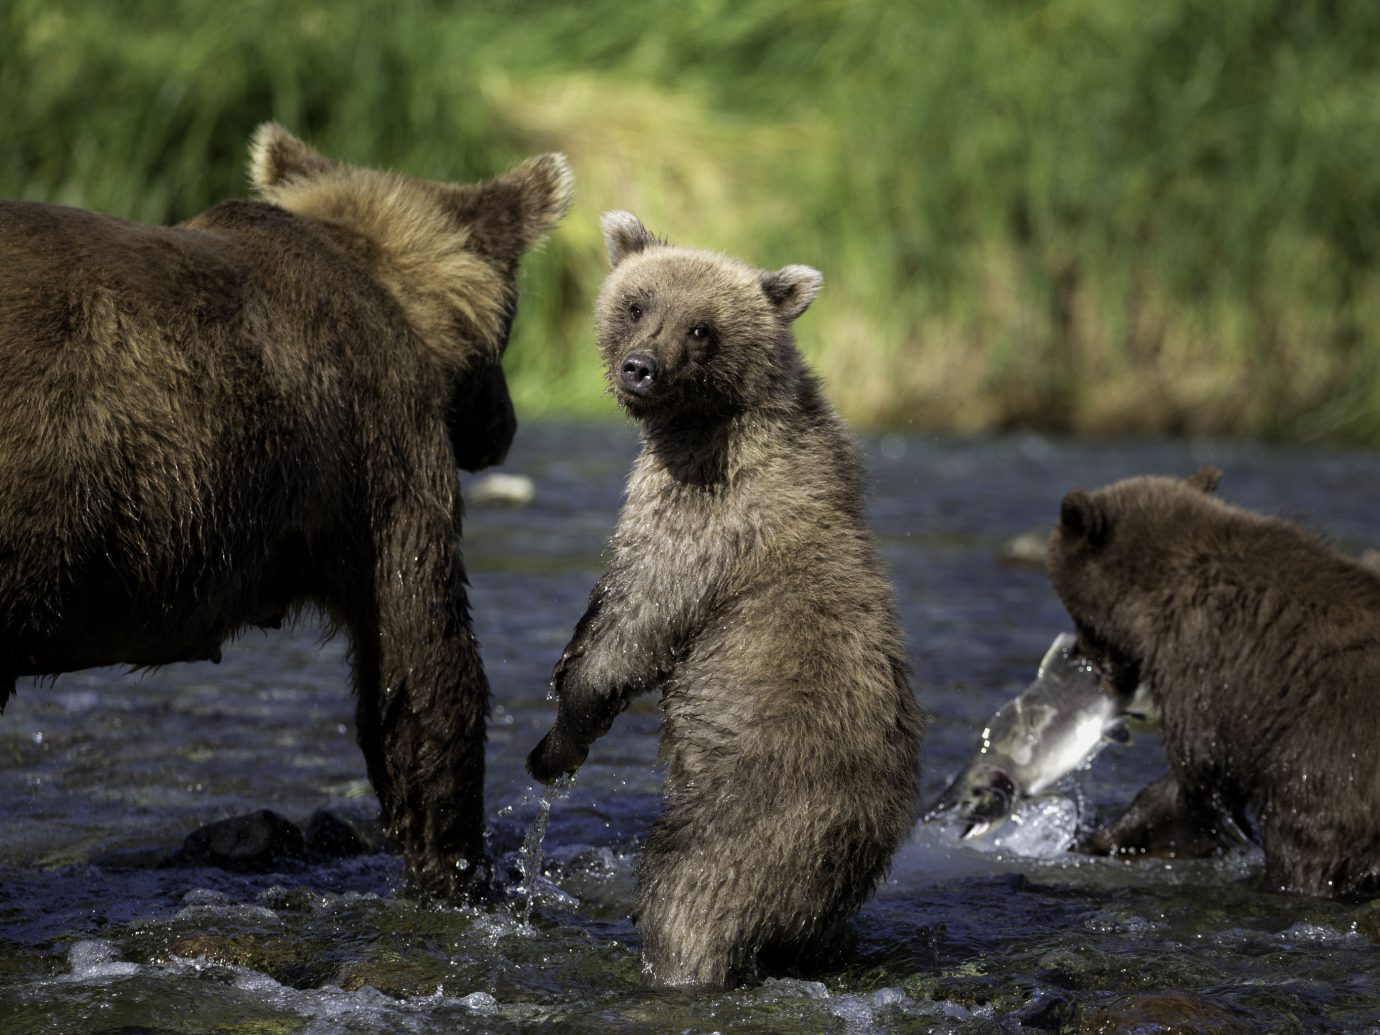 Trip Ideas water grass outdoor brown bear animal grizzly bear mammal vertebrate bear Wildlife fauna River brown zoo